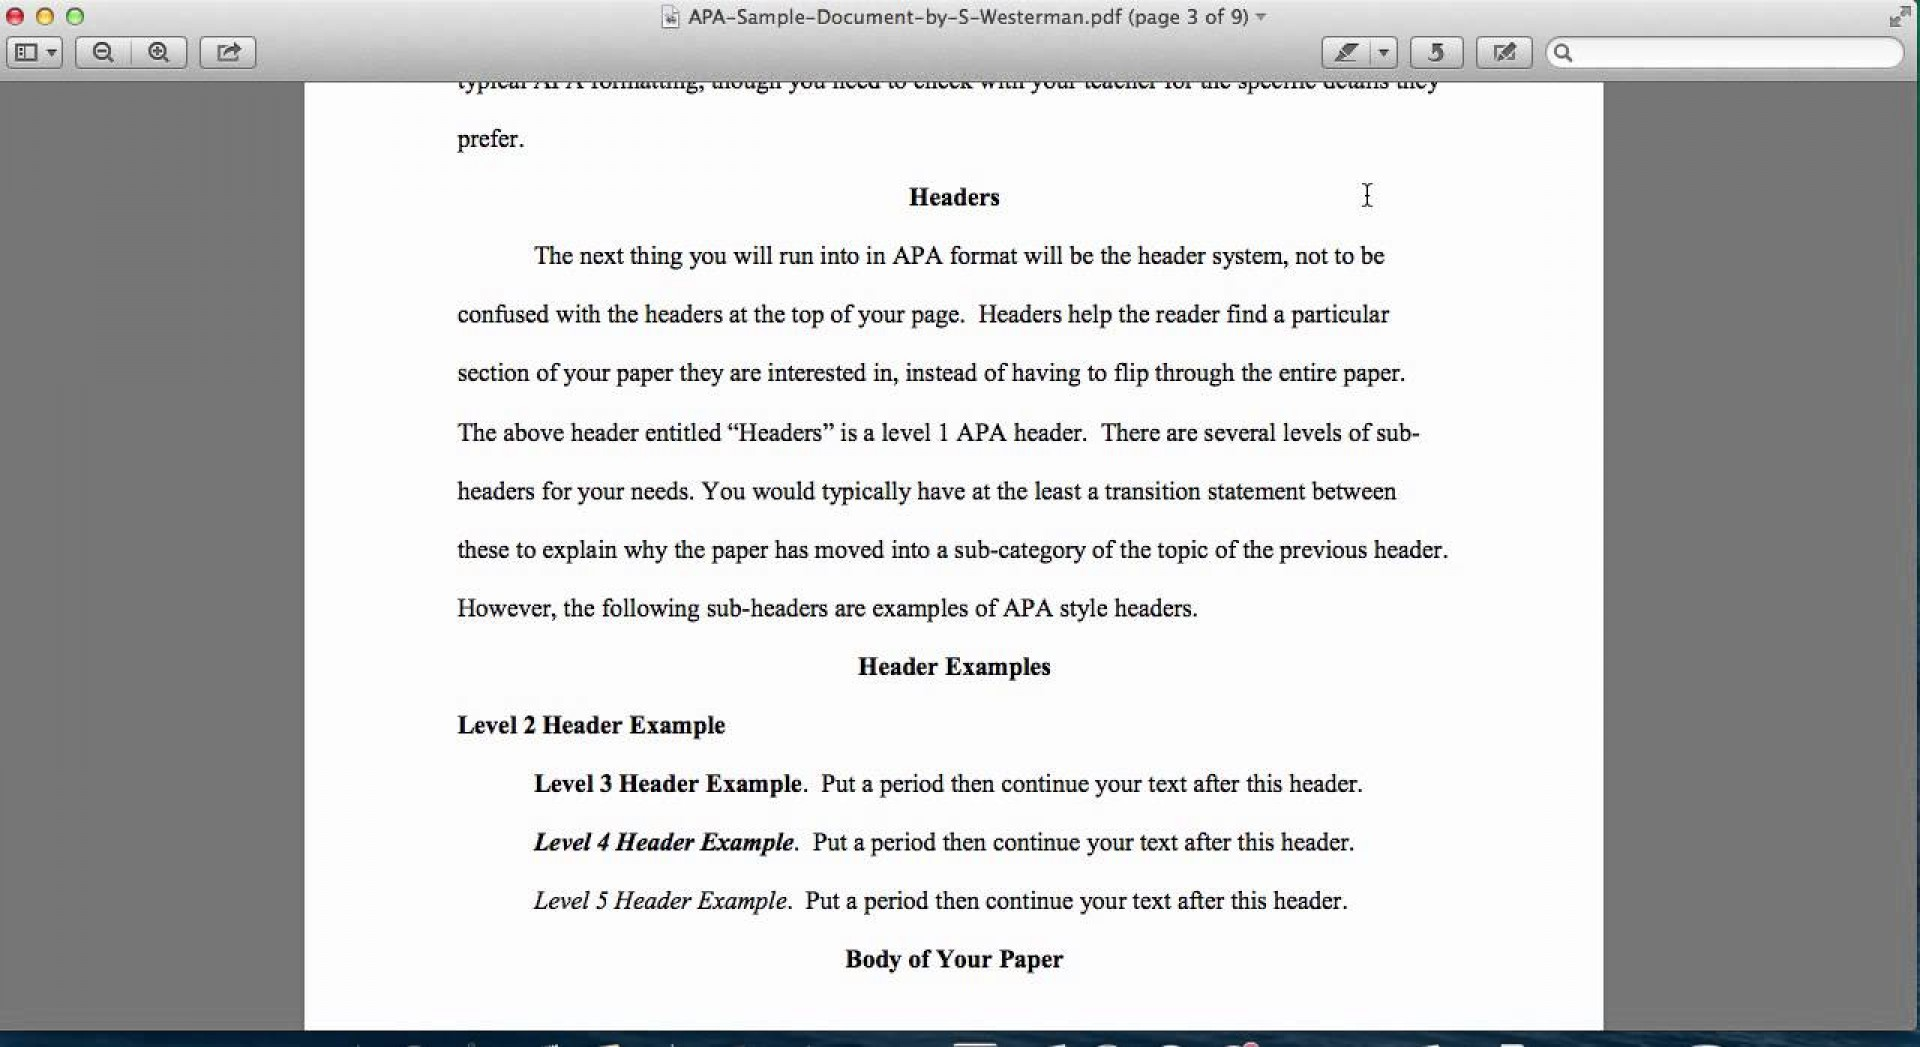 004 Maxresdefault Research Paper Introduction Of Best A Apa For An Format 1920